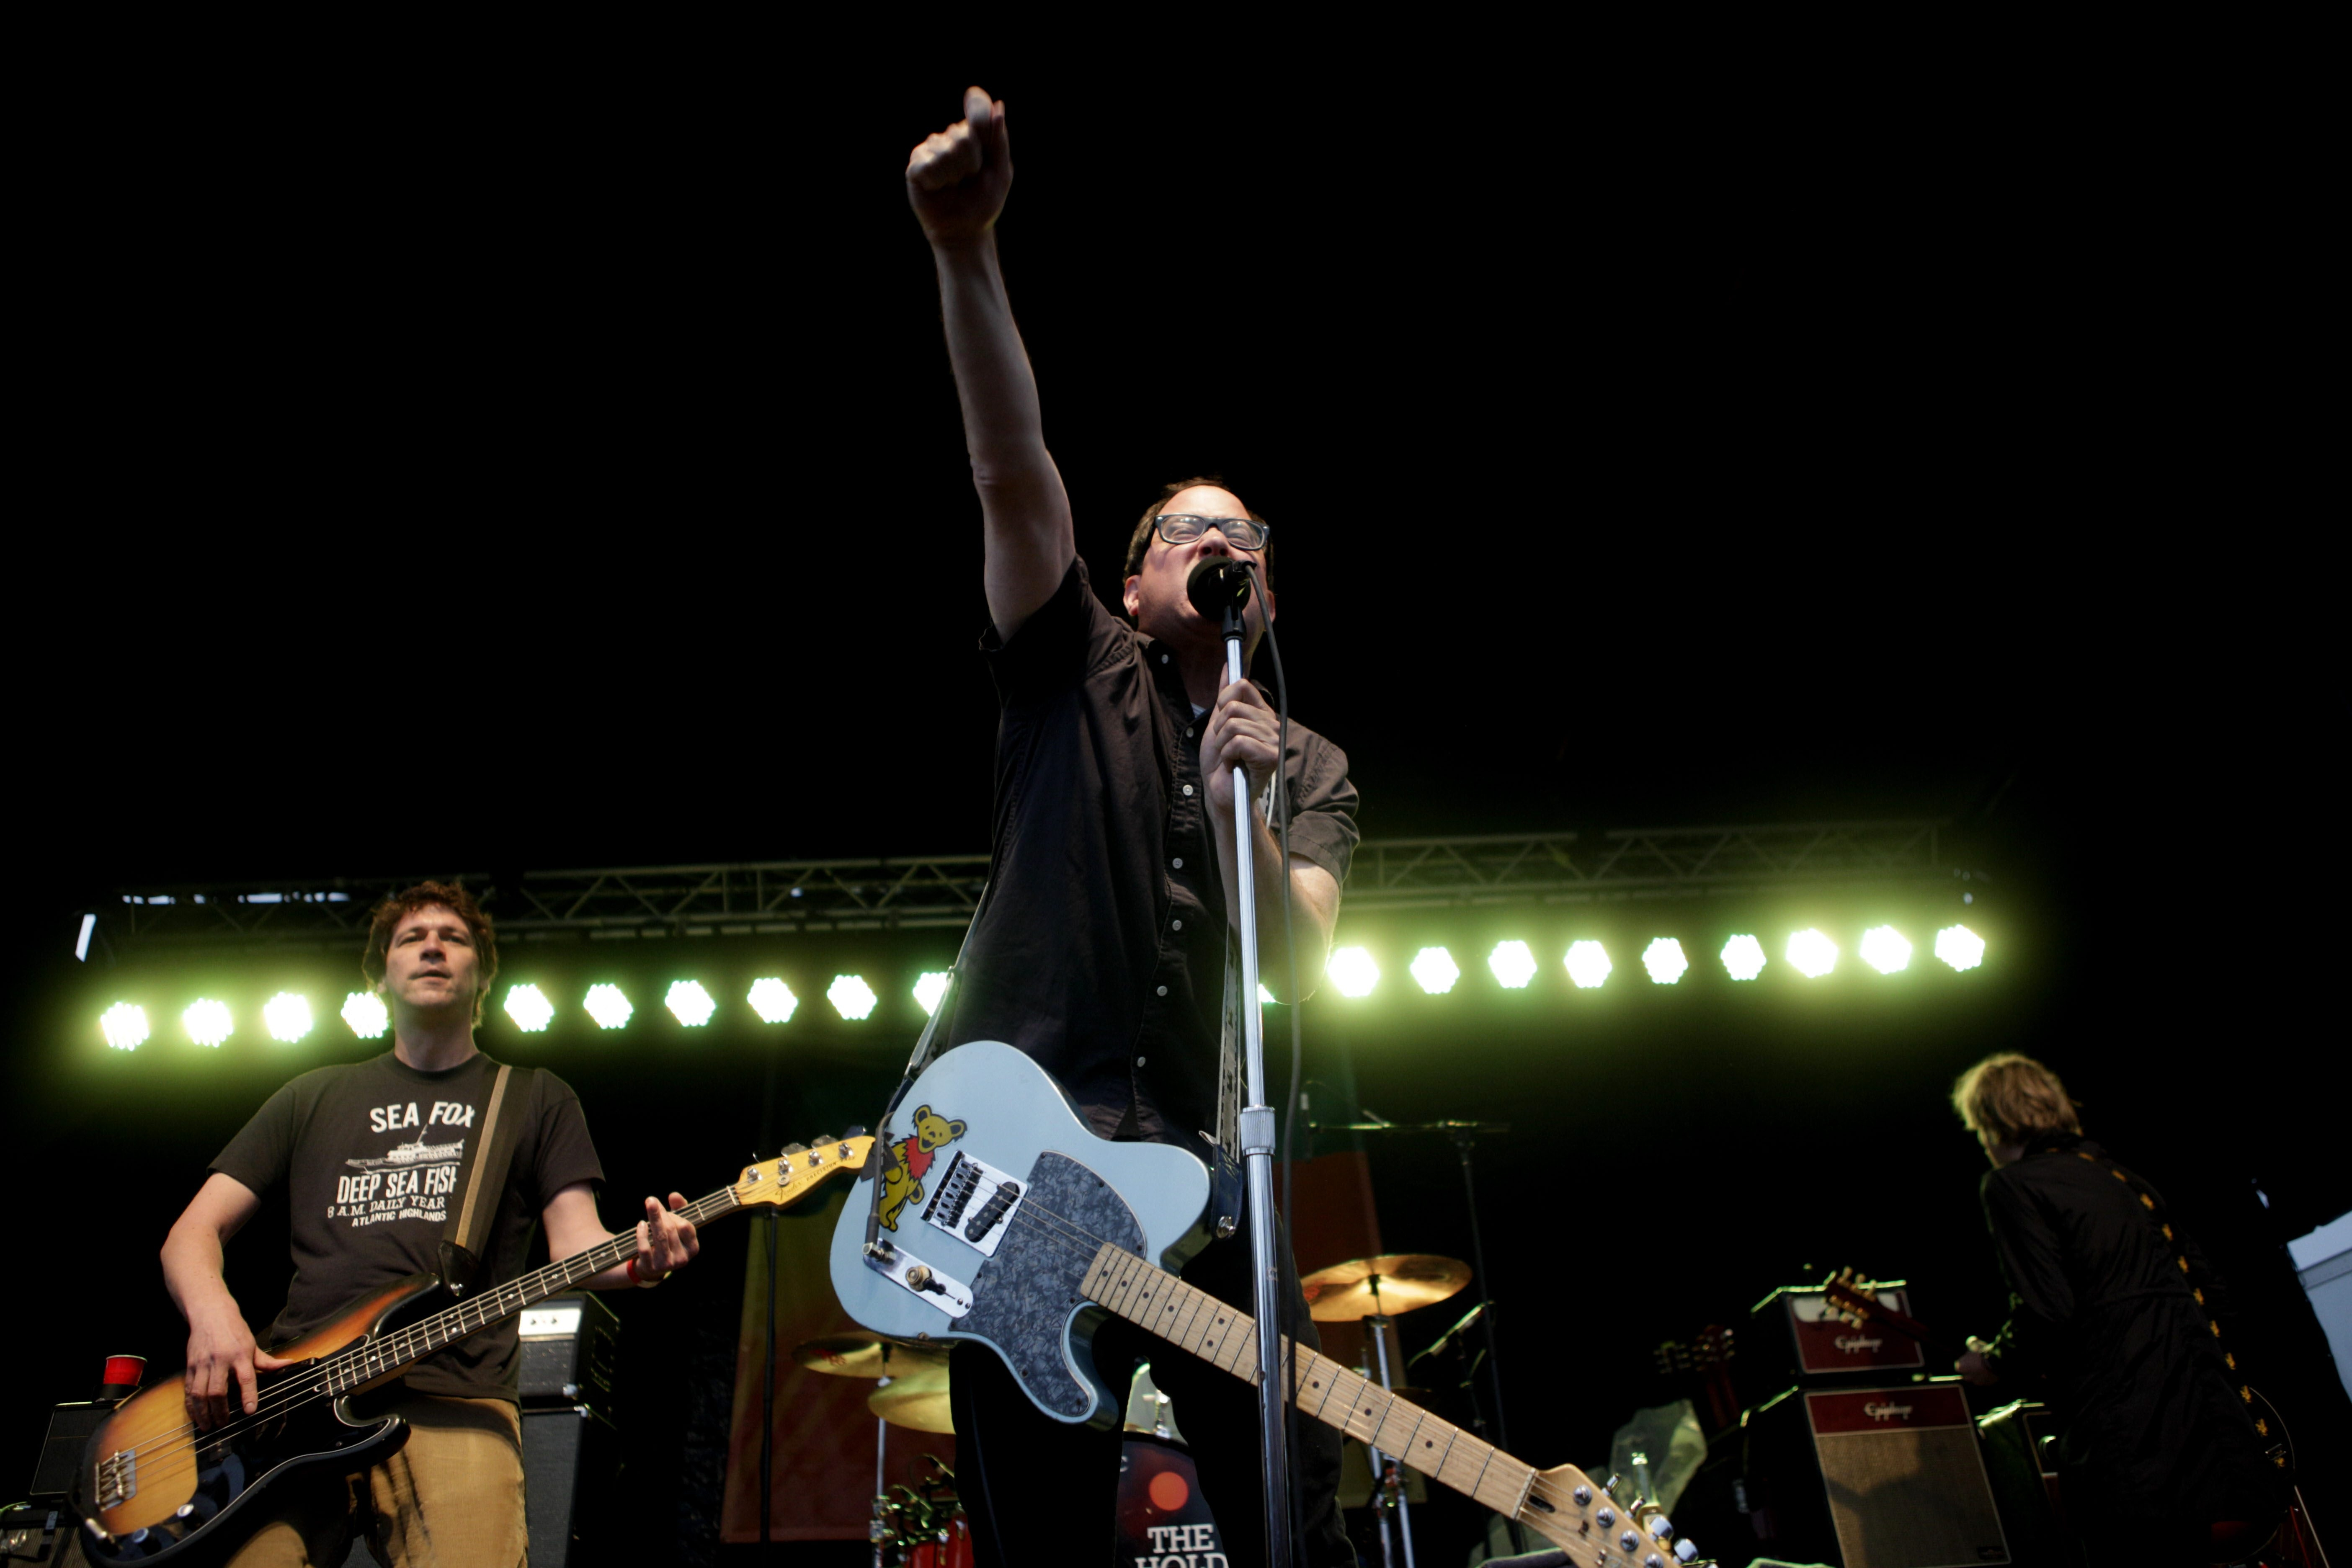 Brooklyn rockers The Hold Steady perform during the first concert of the Thursday at Canalside series. Rain and cool weather kept the crowd size down.